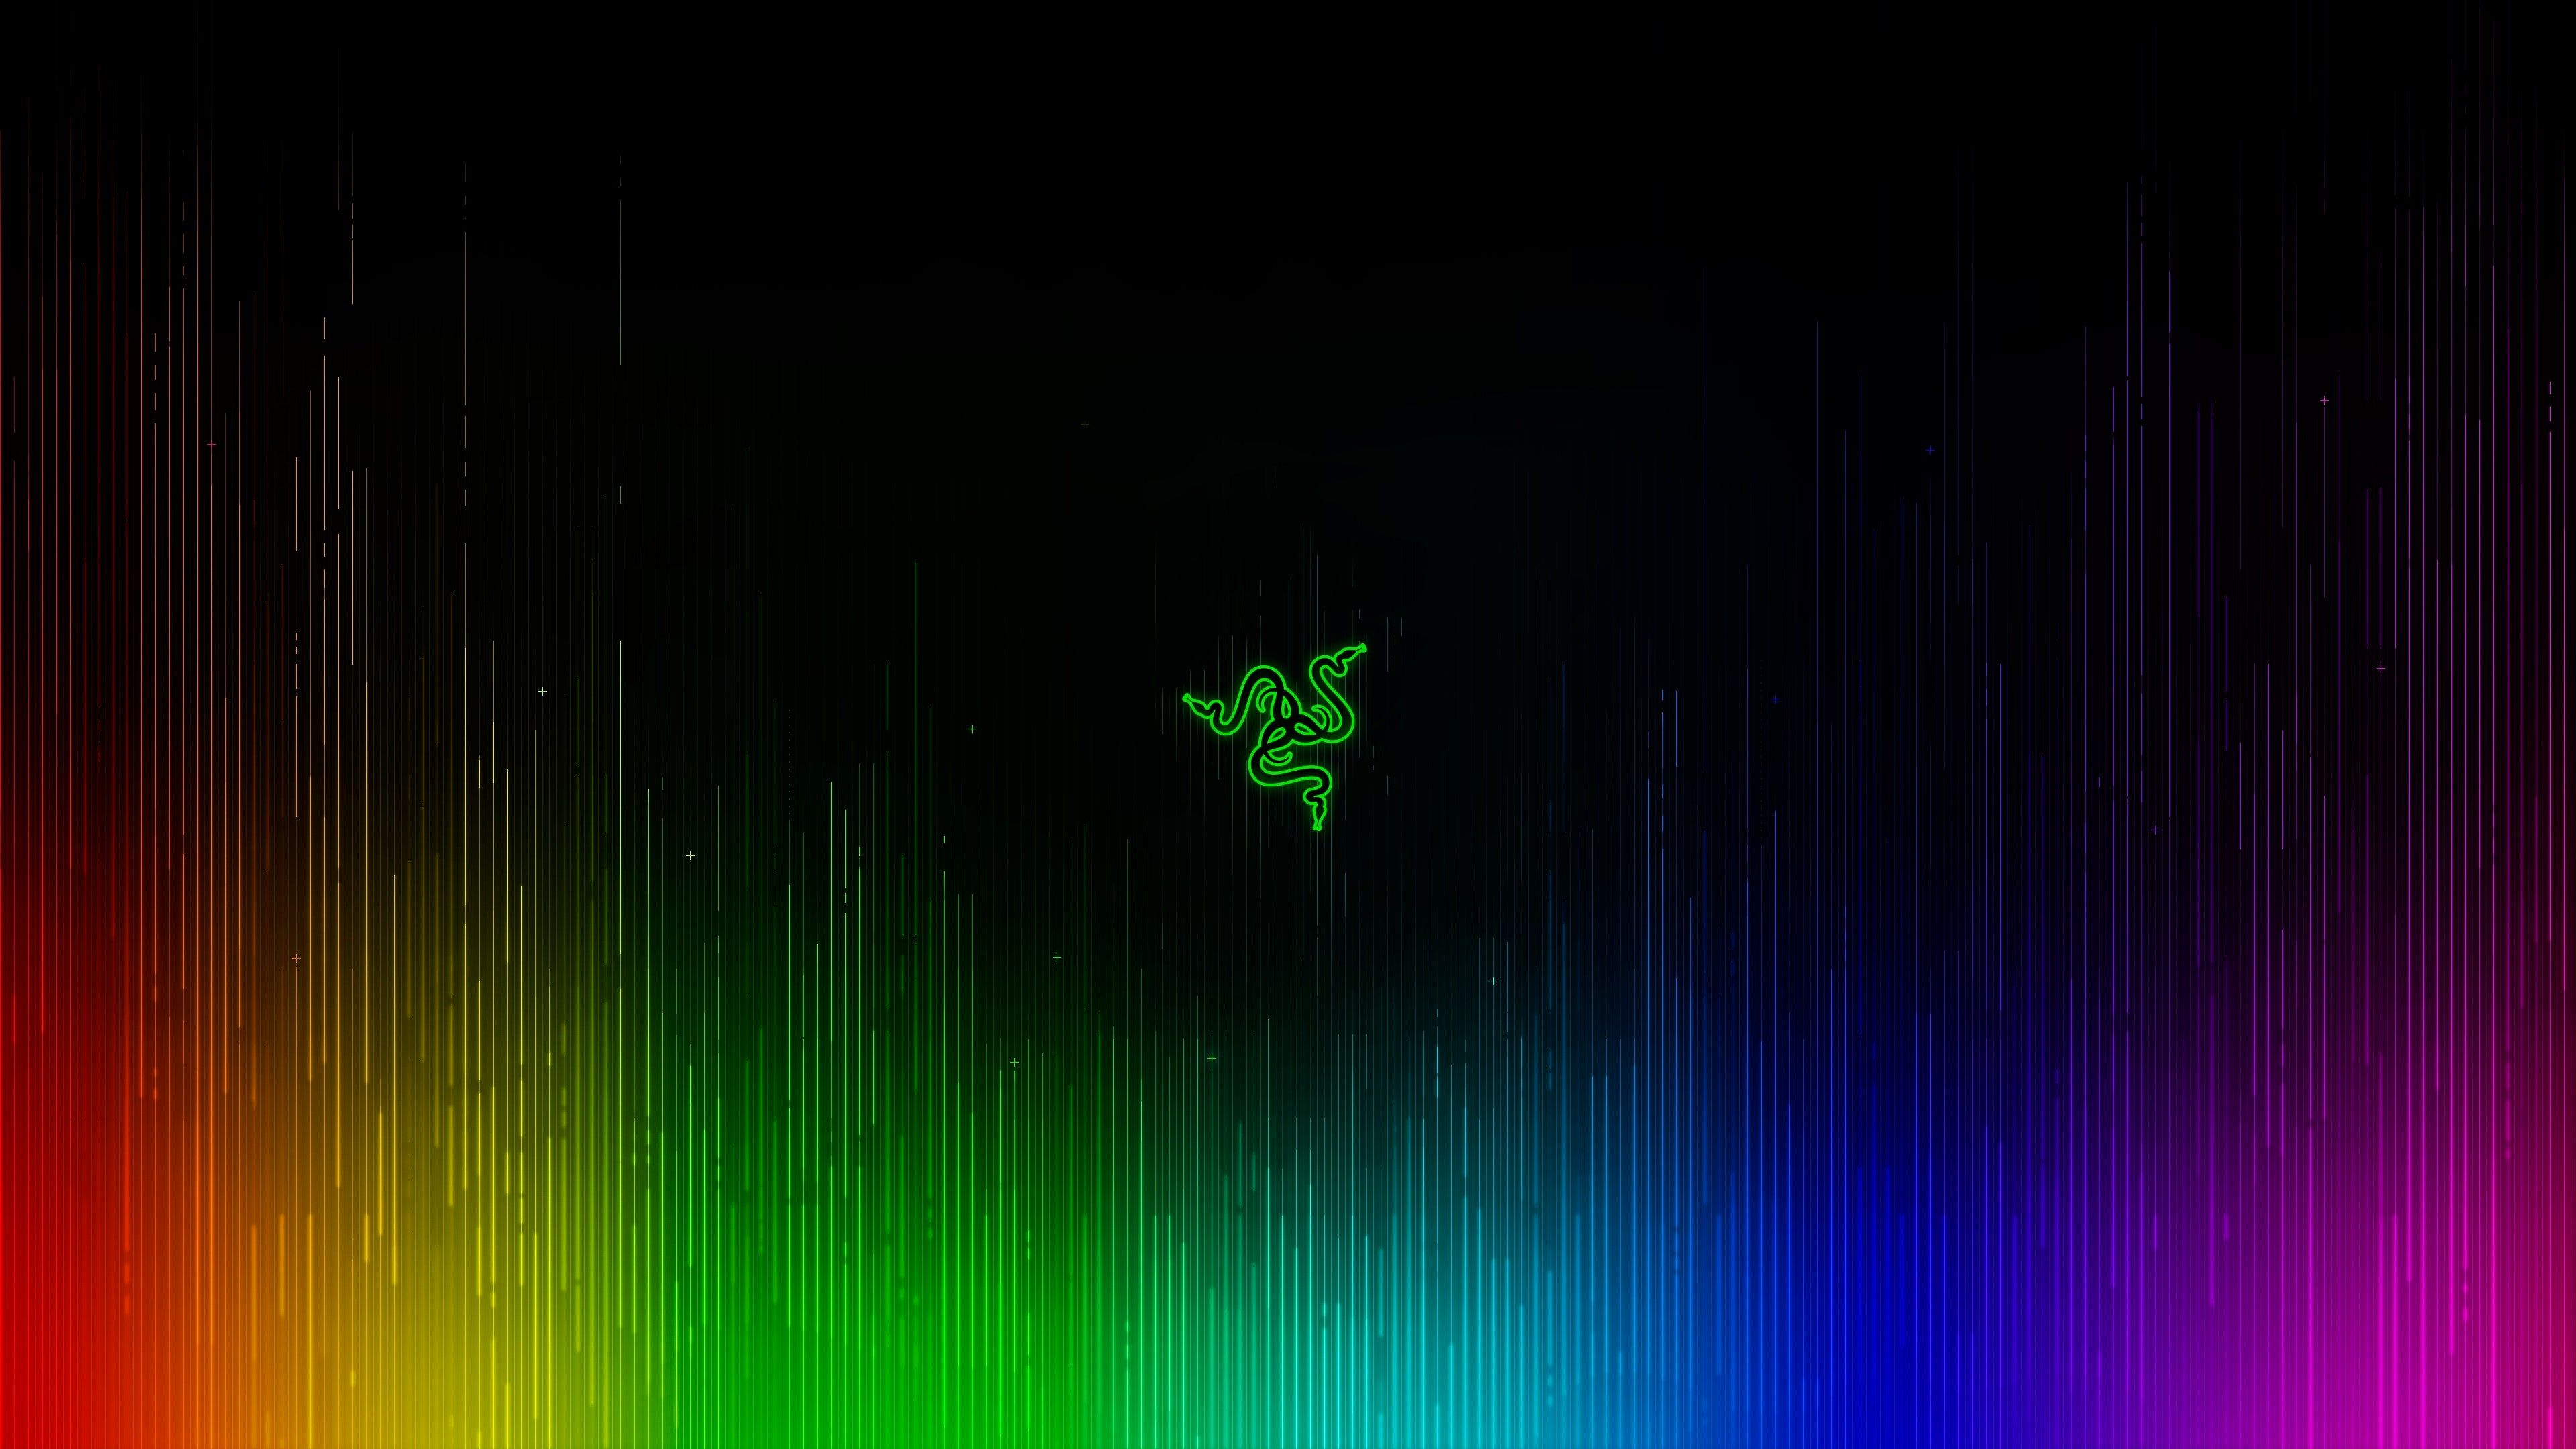 3840x2160 Razer Chroma 4k Wallpaper 4k Gaming Wallpaper Gaming Wallpapers Computer Wallpaper Desktop Wallpapers